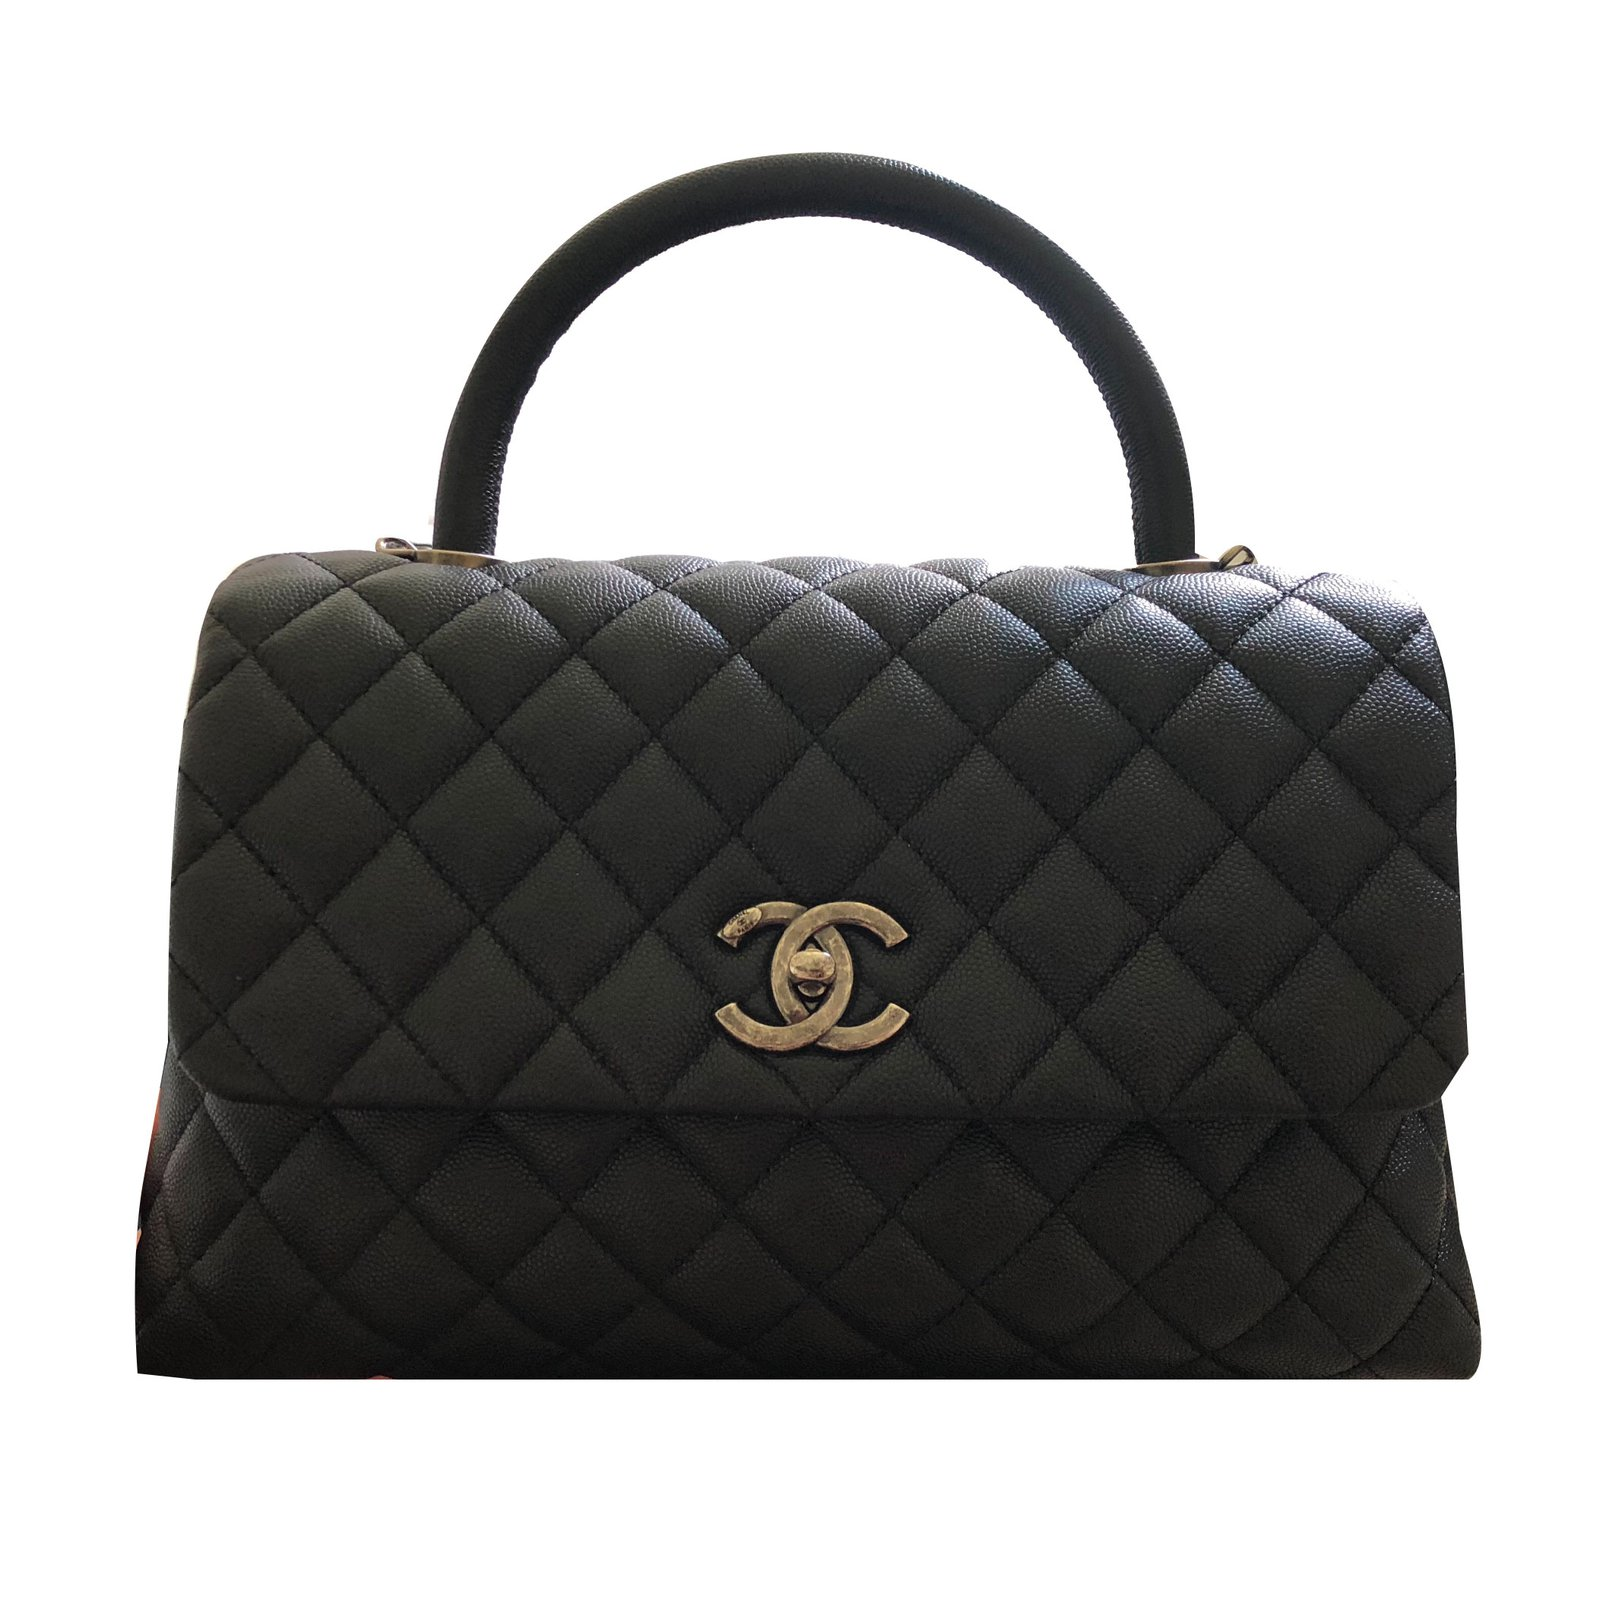 2019 year for women- Chanel coco handbags photo